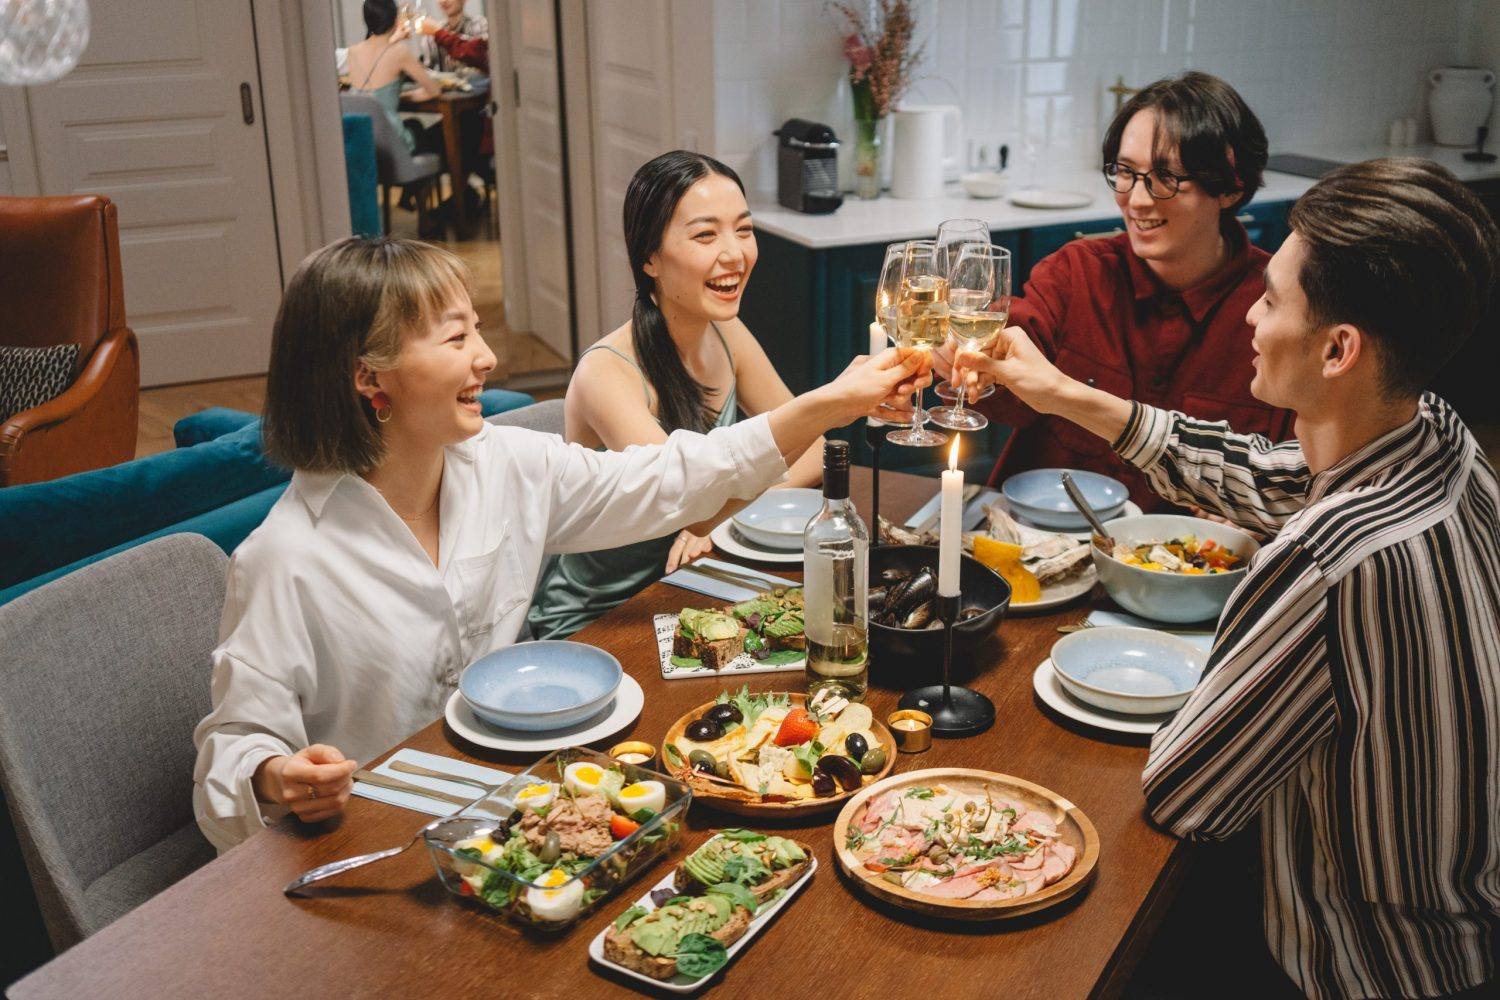 Image of friends eating together